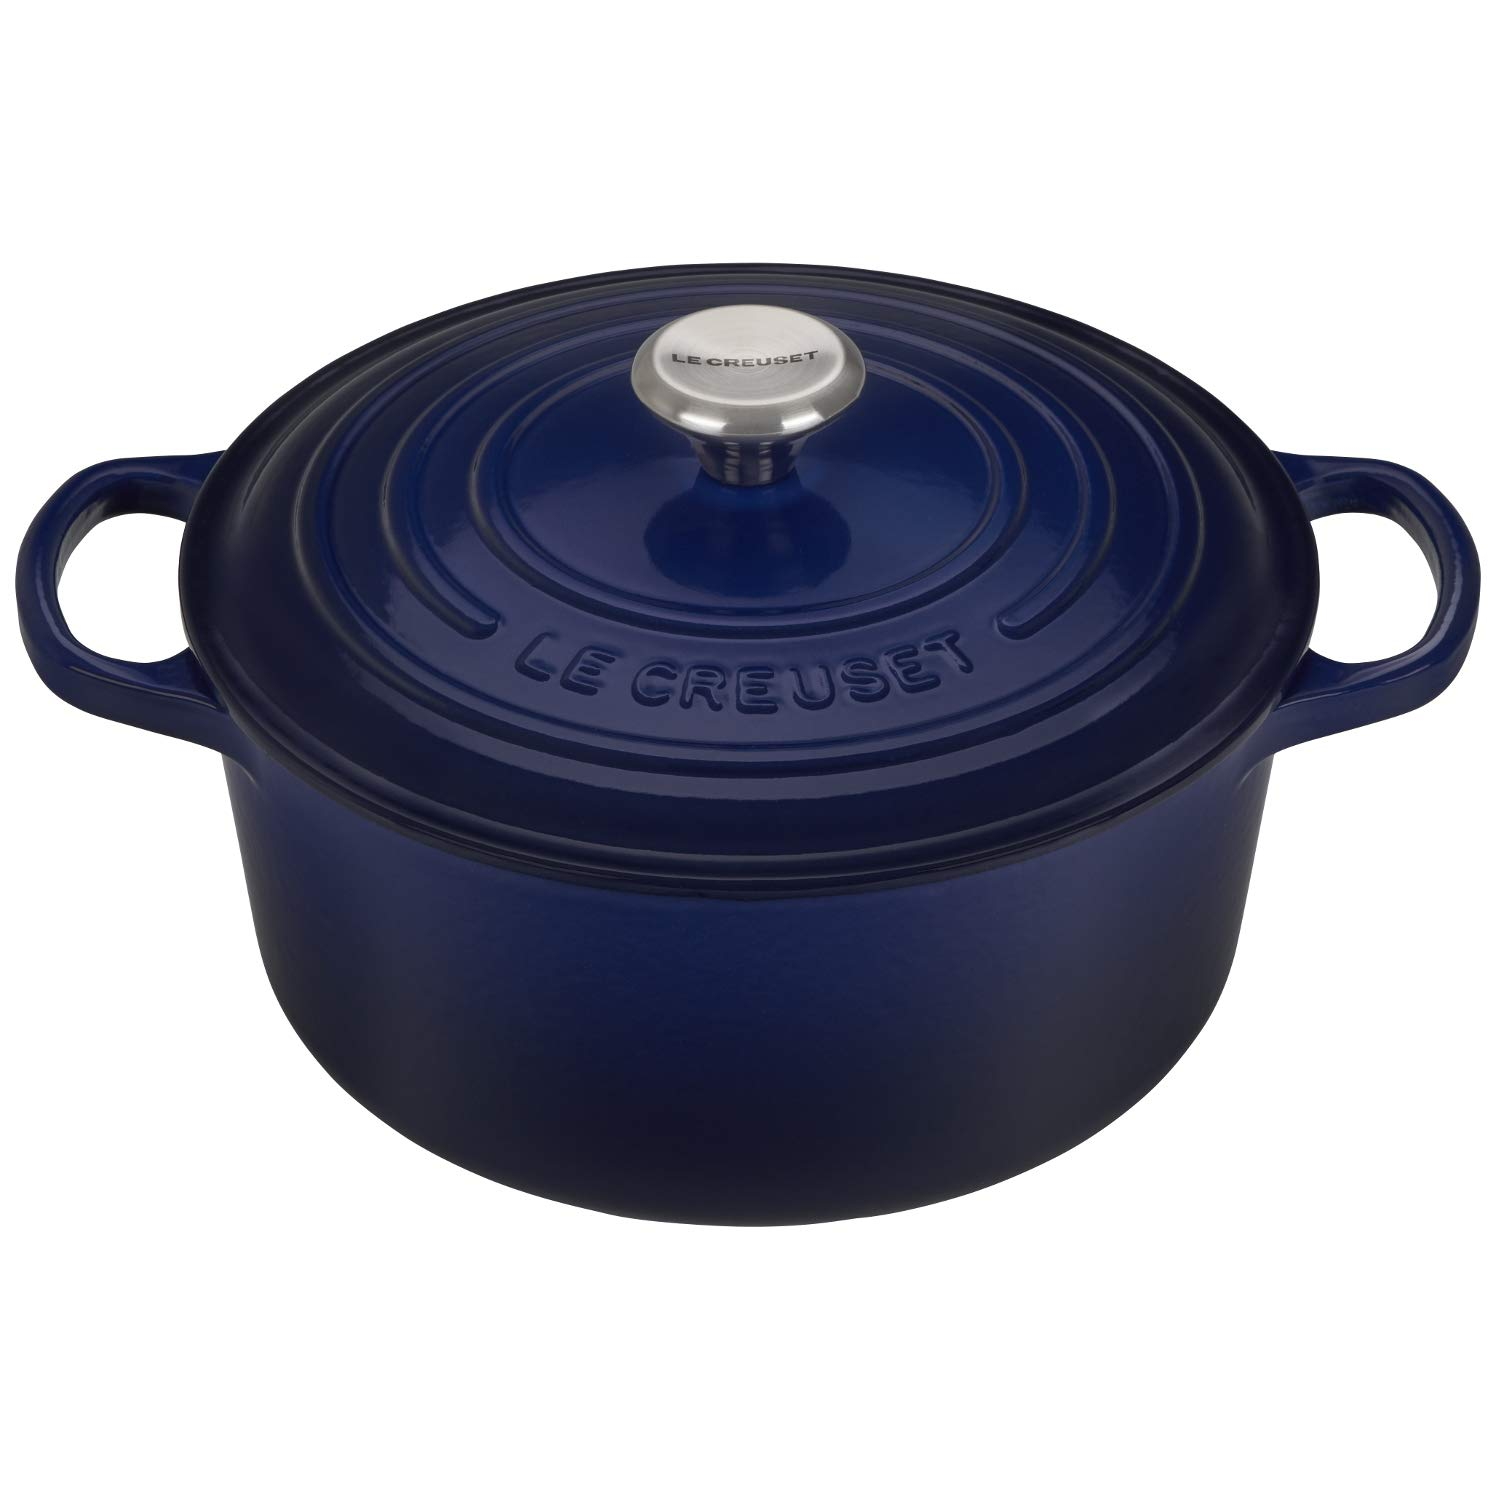 Le Creuset Signature Indigo Enameled Cast Iron 3.5 Quart Round French Oven